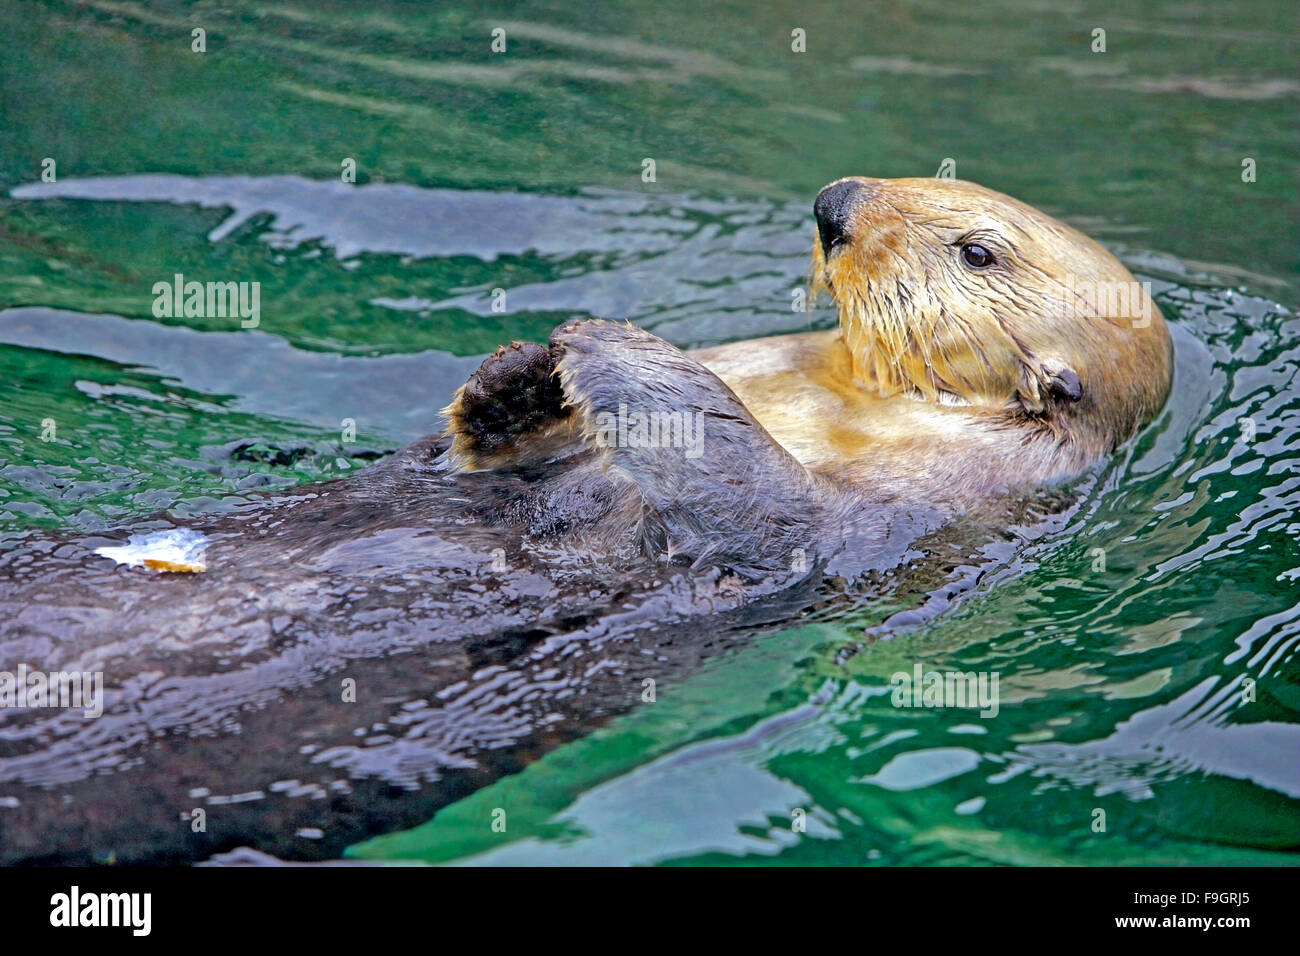 Sea Otter swimming on its back, relaxied - Stock Image